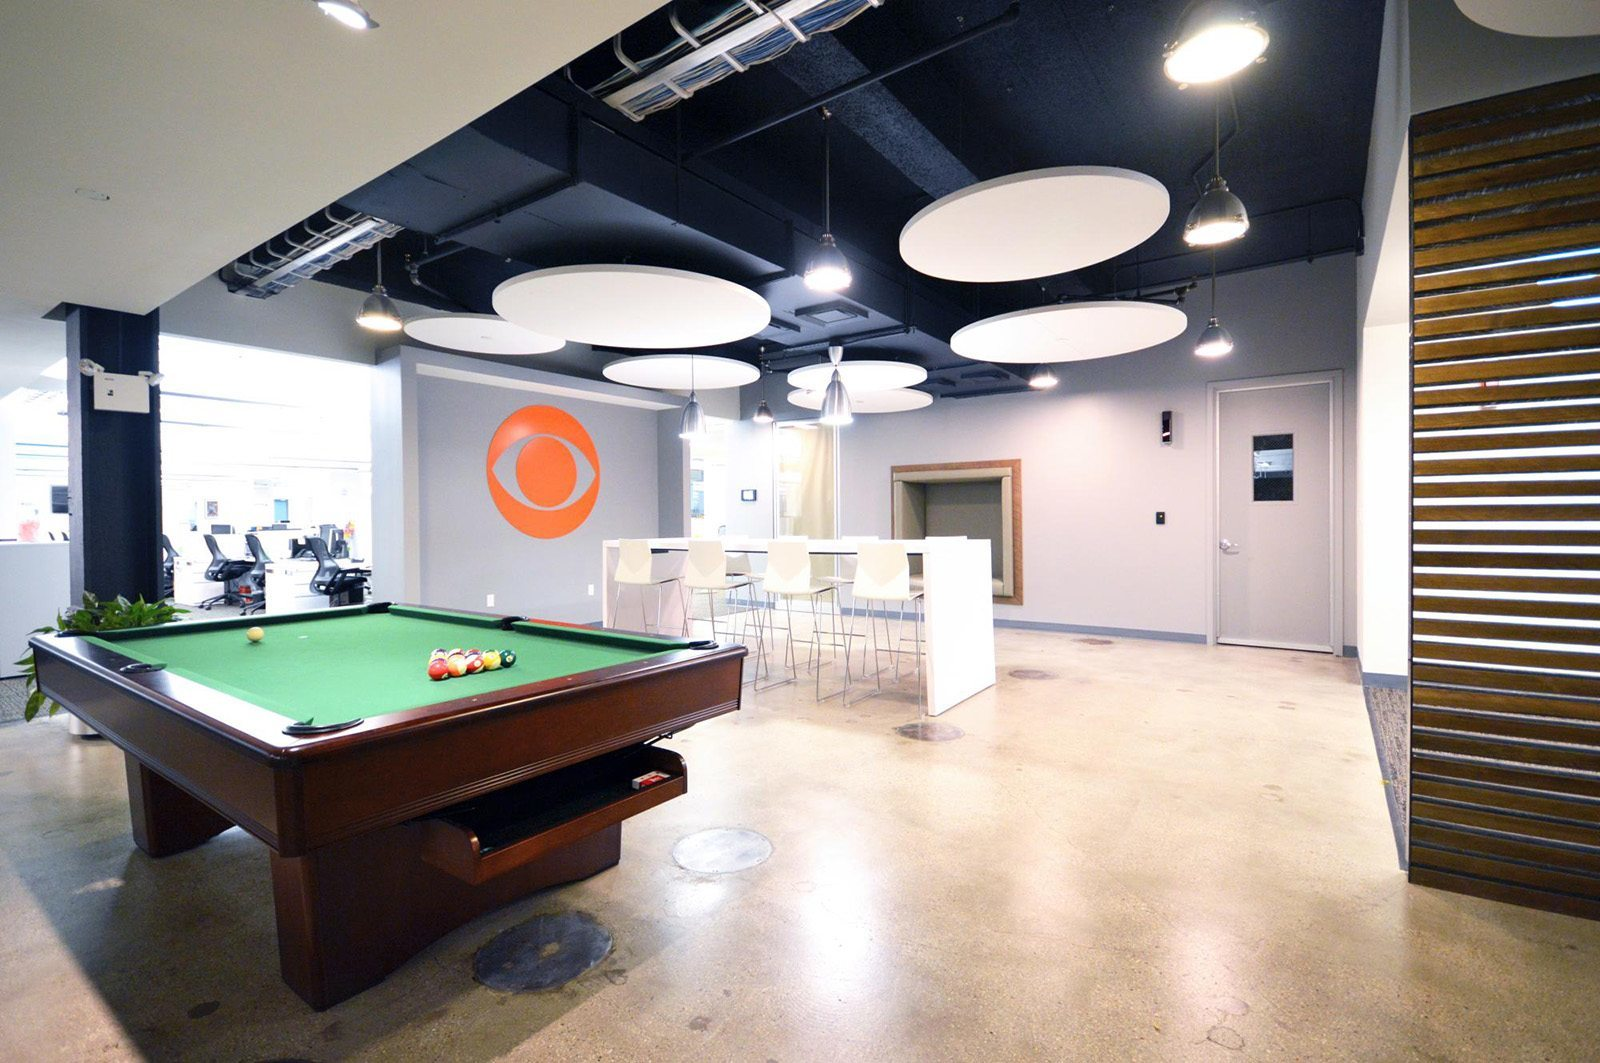 A Look Inside CBS Interactives New York City Office Officelovin - Pool table nyc